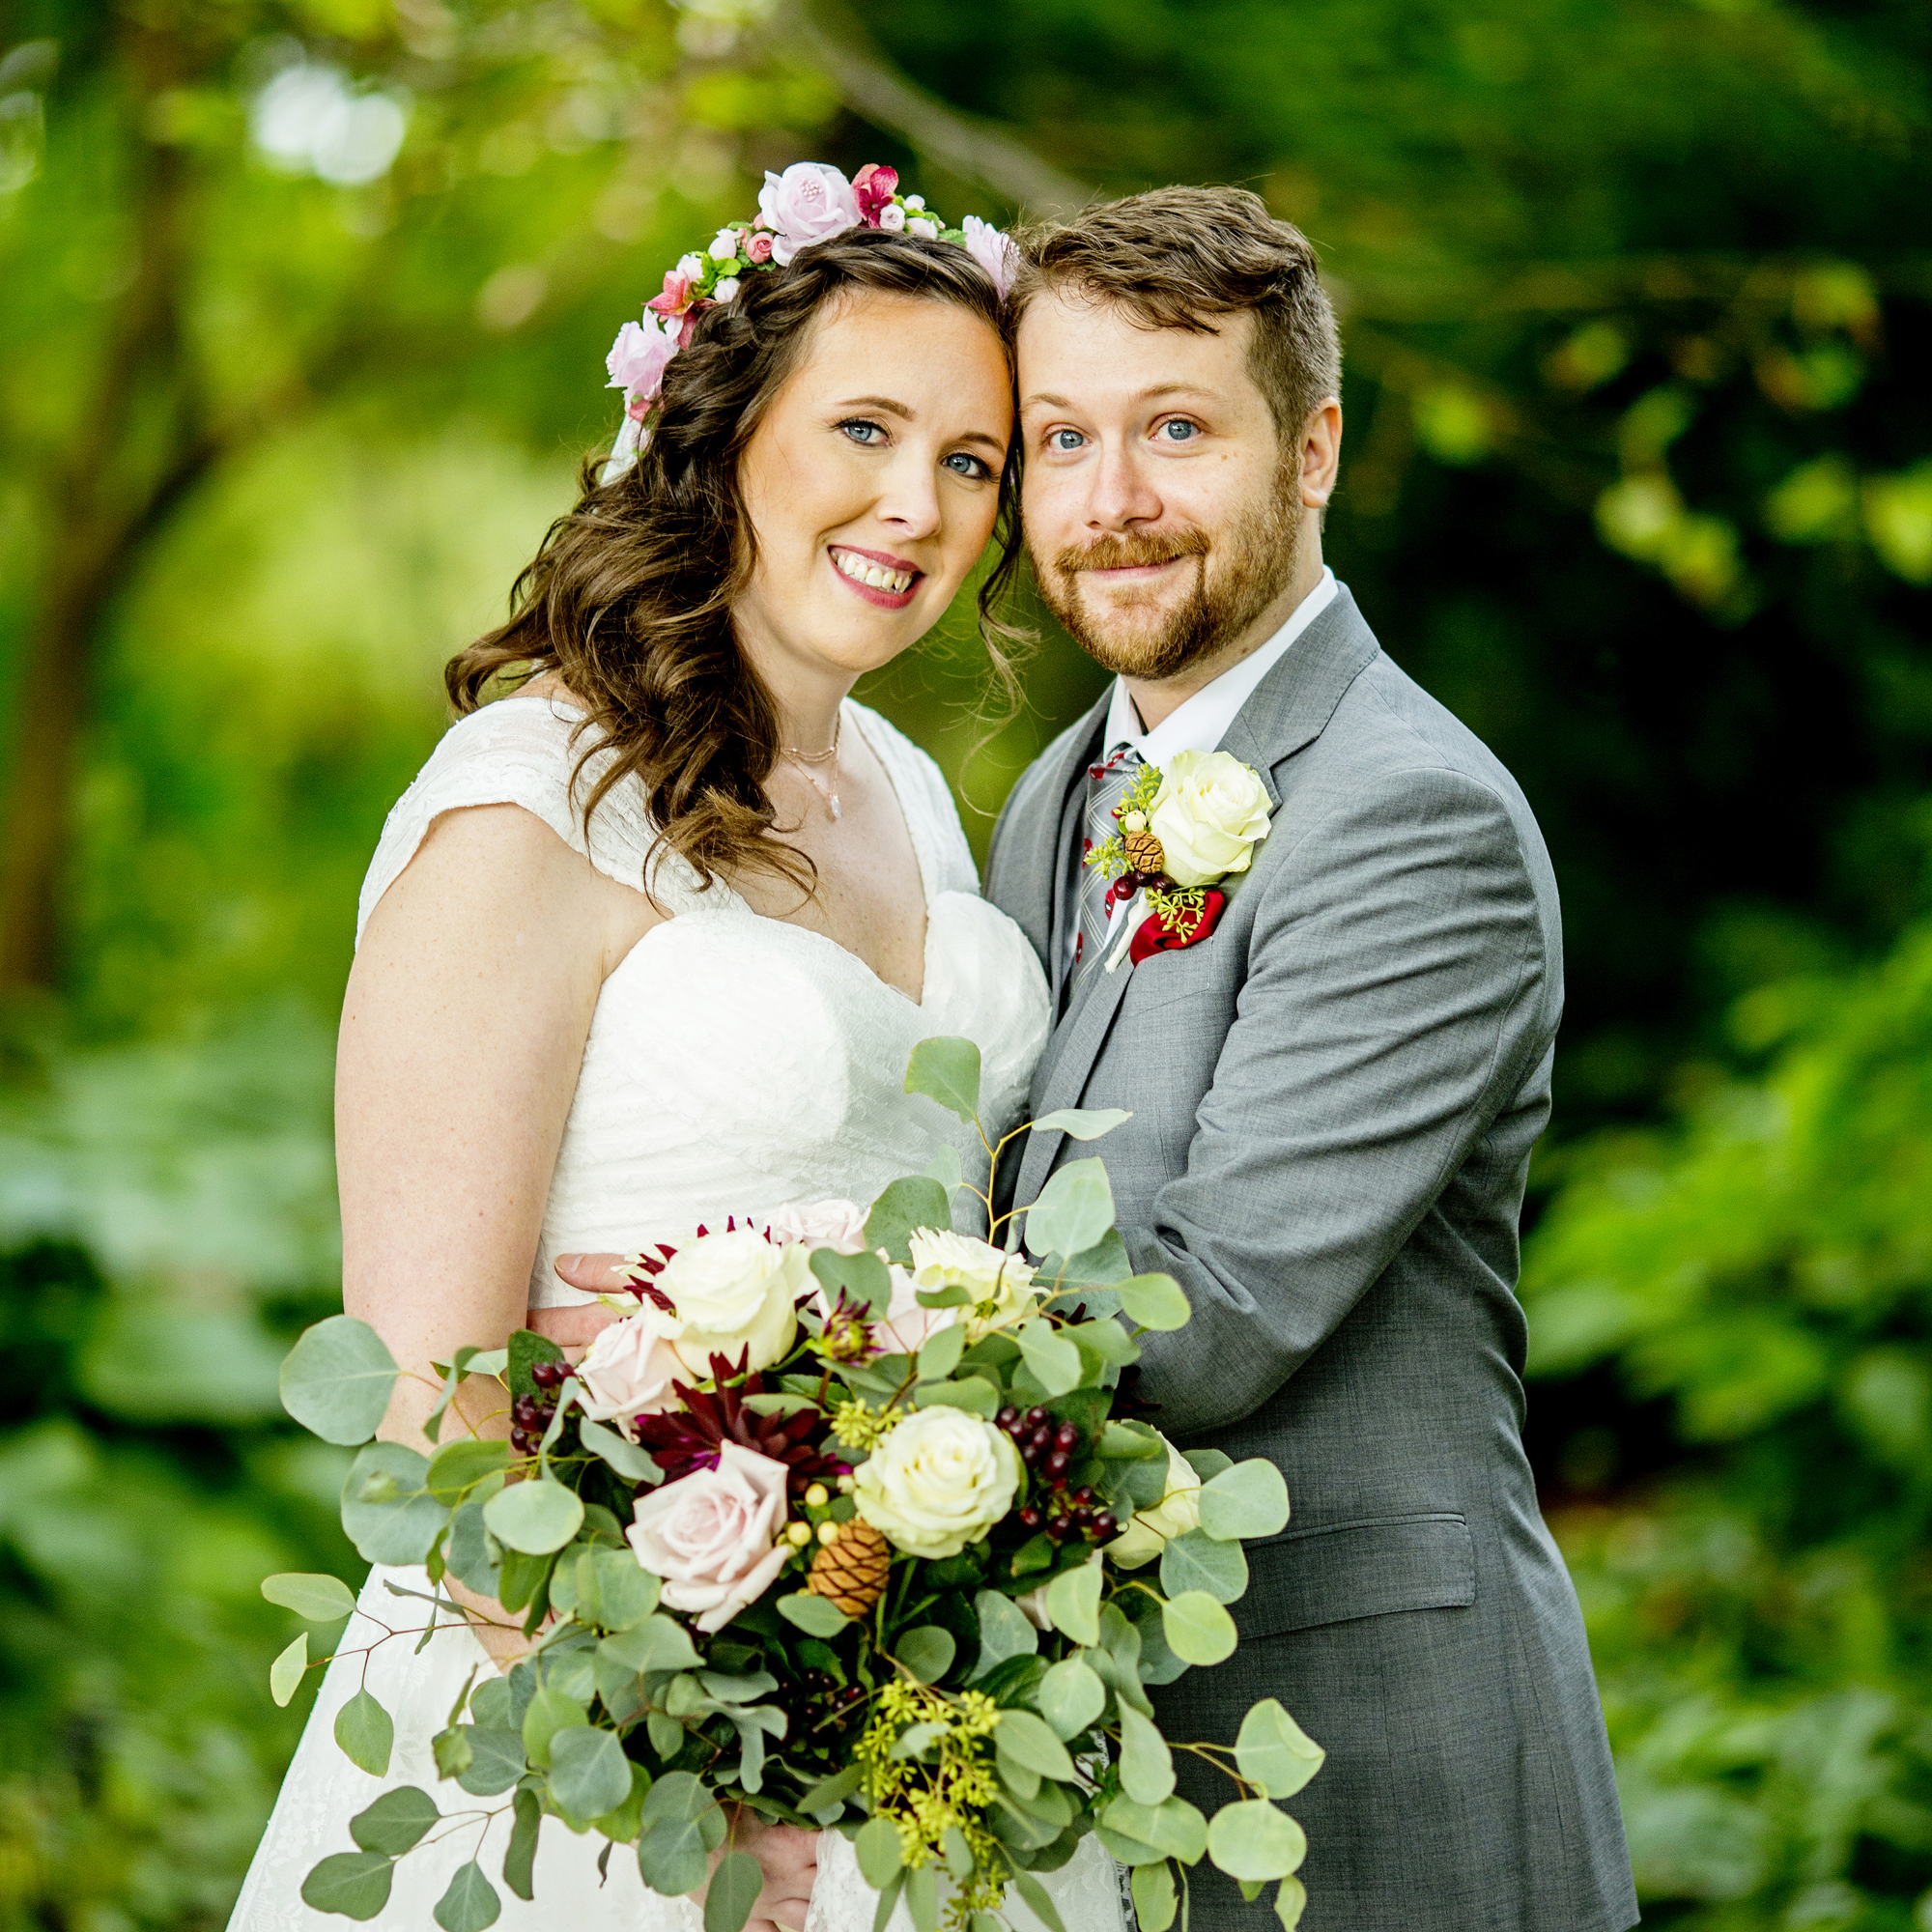 Seriously_Sabrina_Photography_Lisle_Illinois_Morton_Arboretum_Wedding_Day_Gowen45.jpg